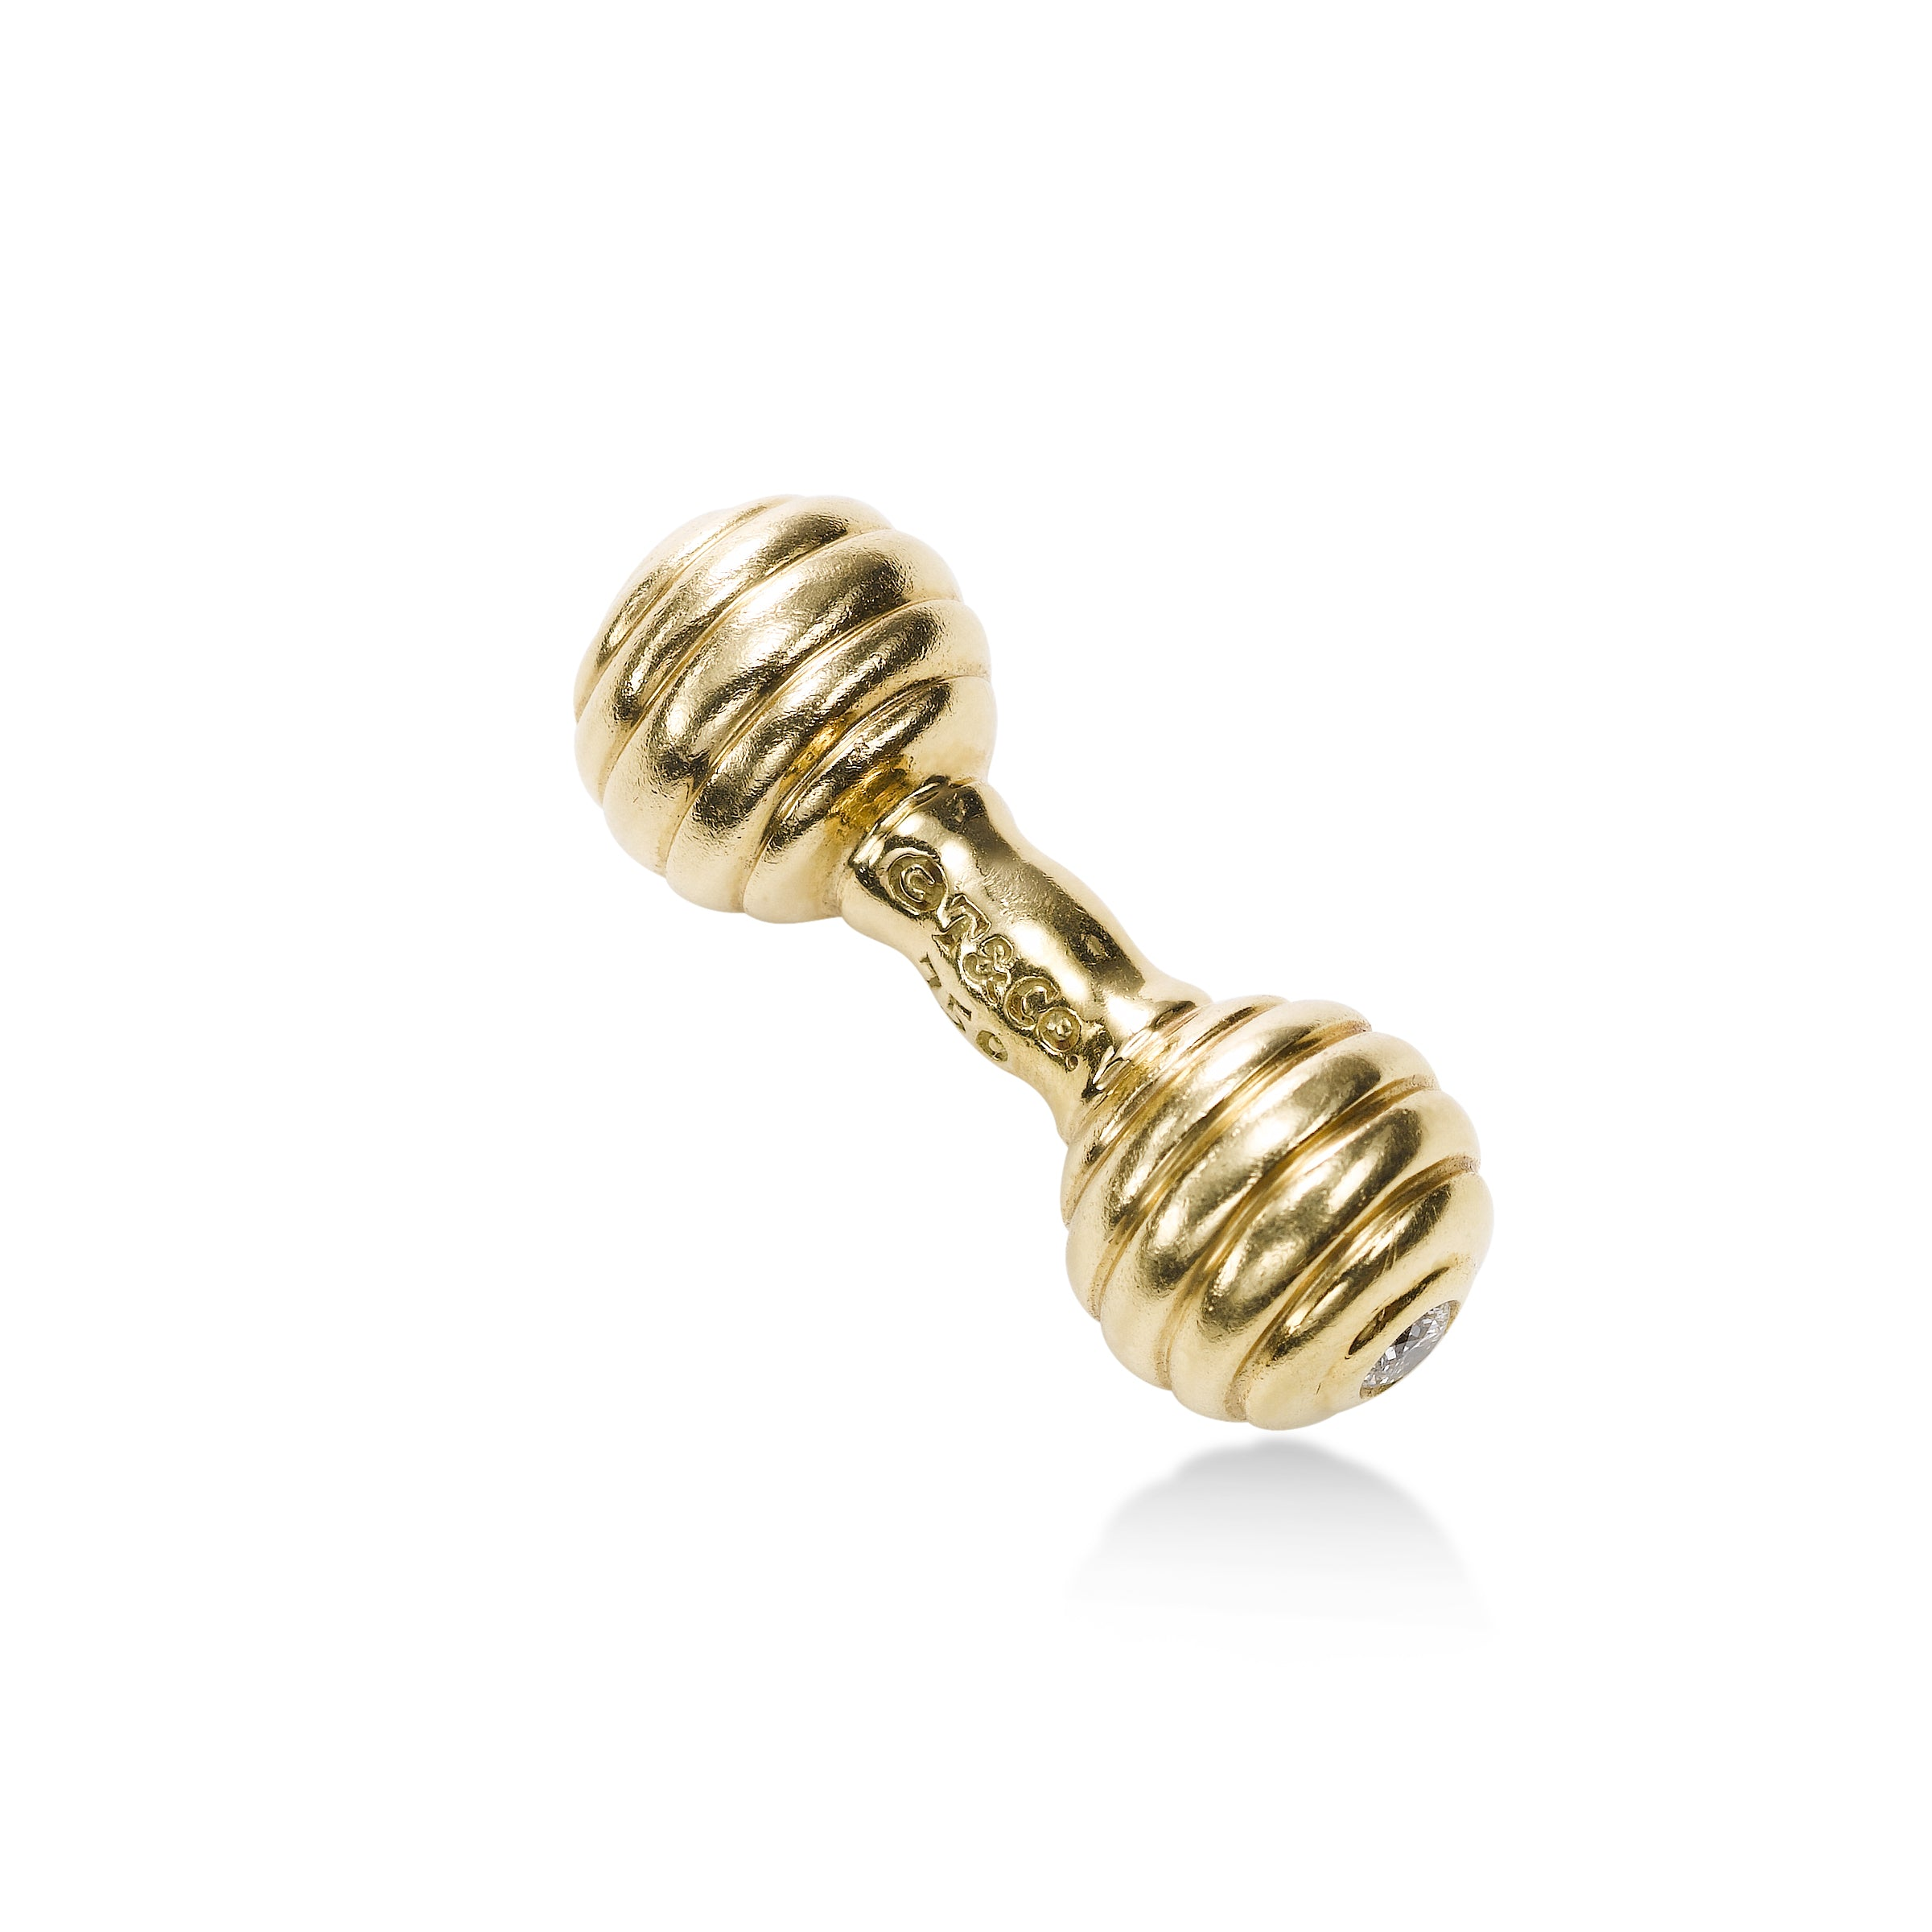 Diamond Baby Rattle Charm, 18K Yellow Gold, Signed T&Co.